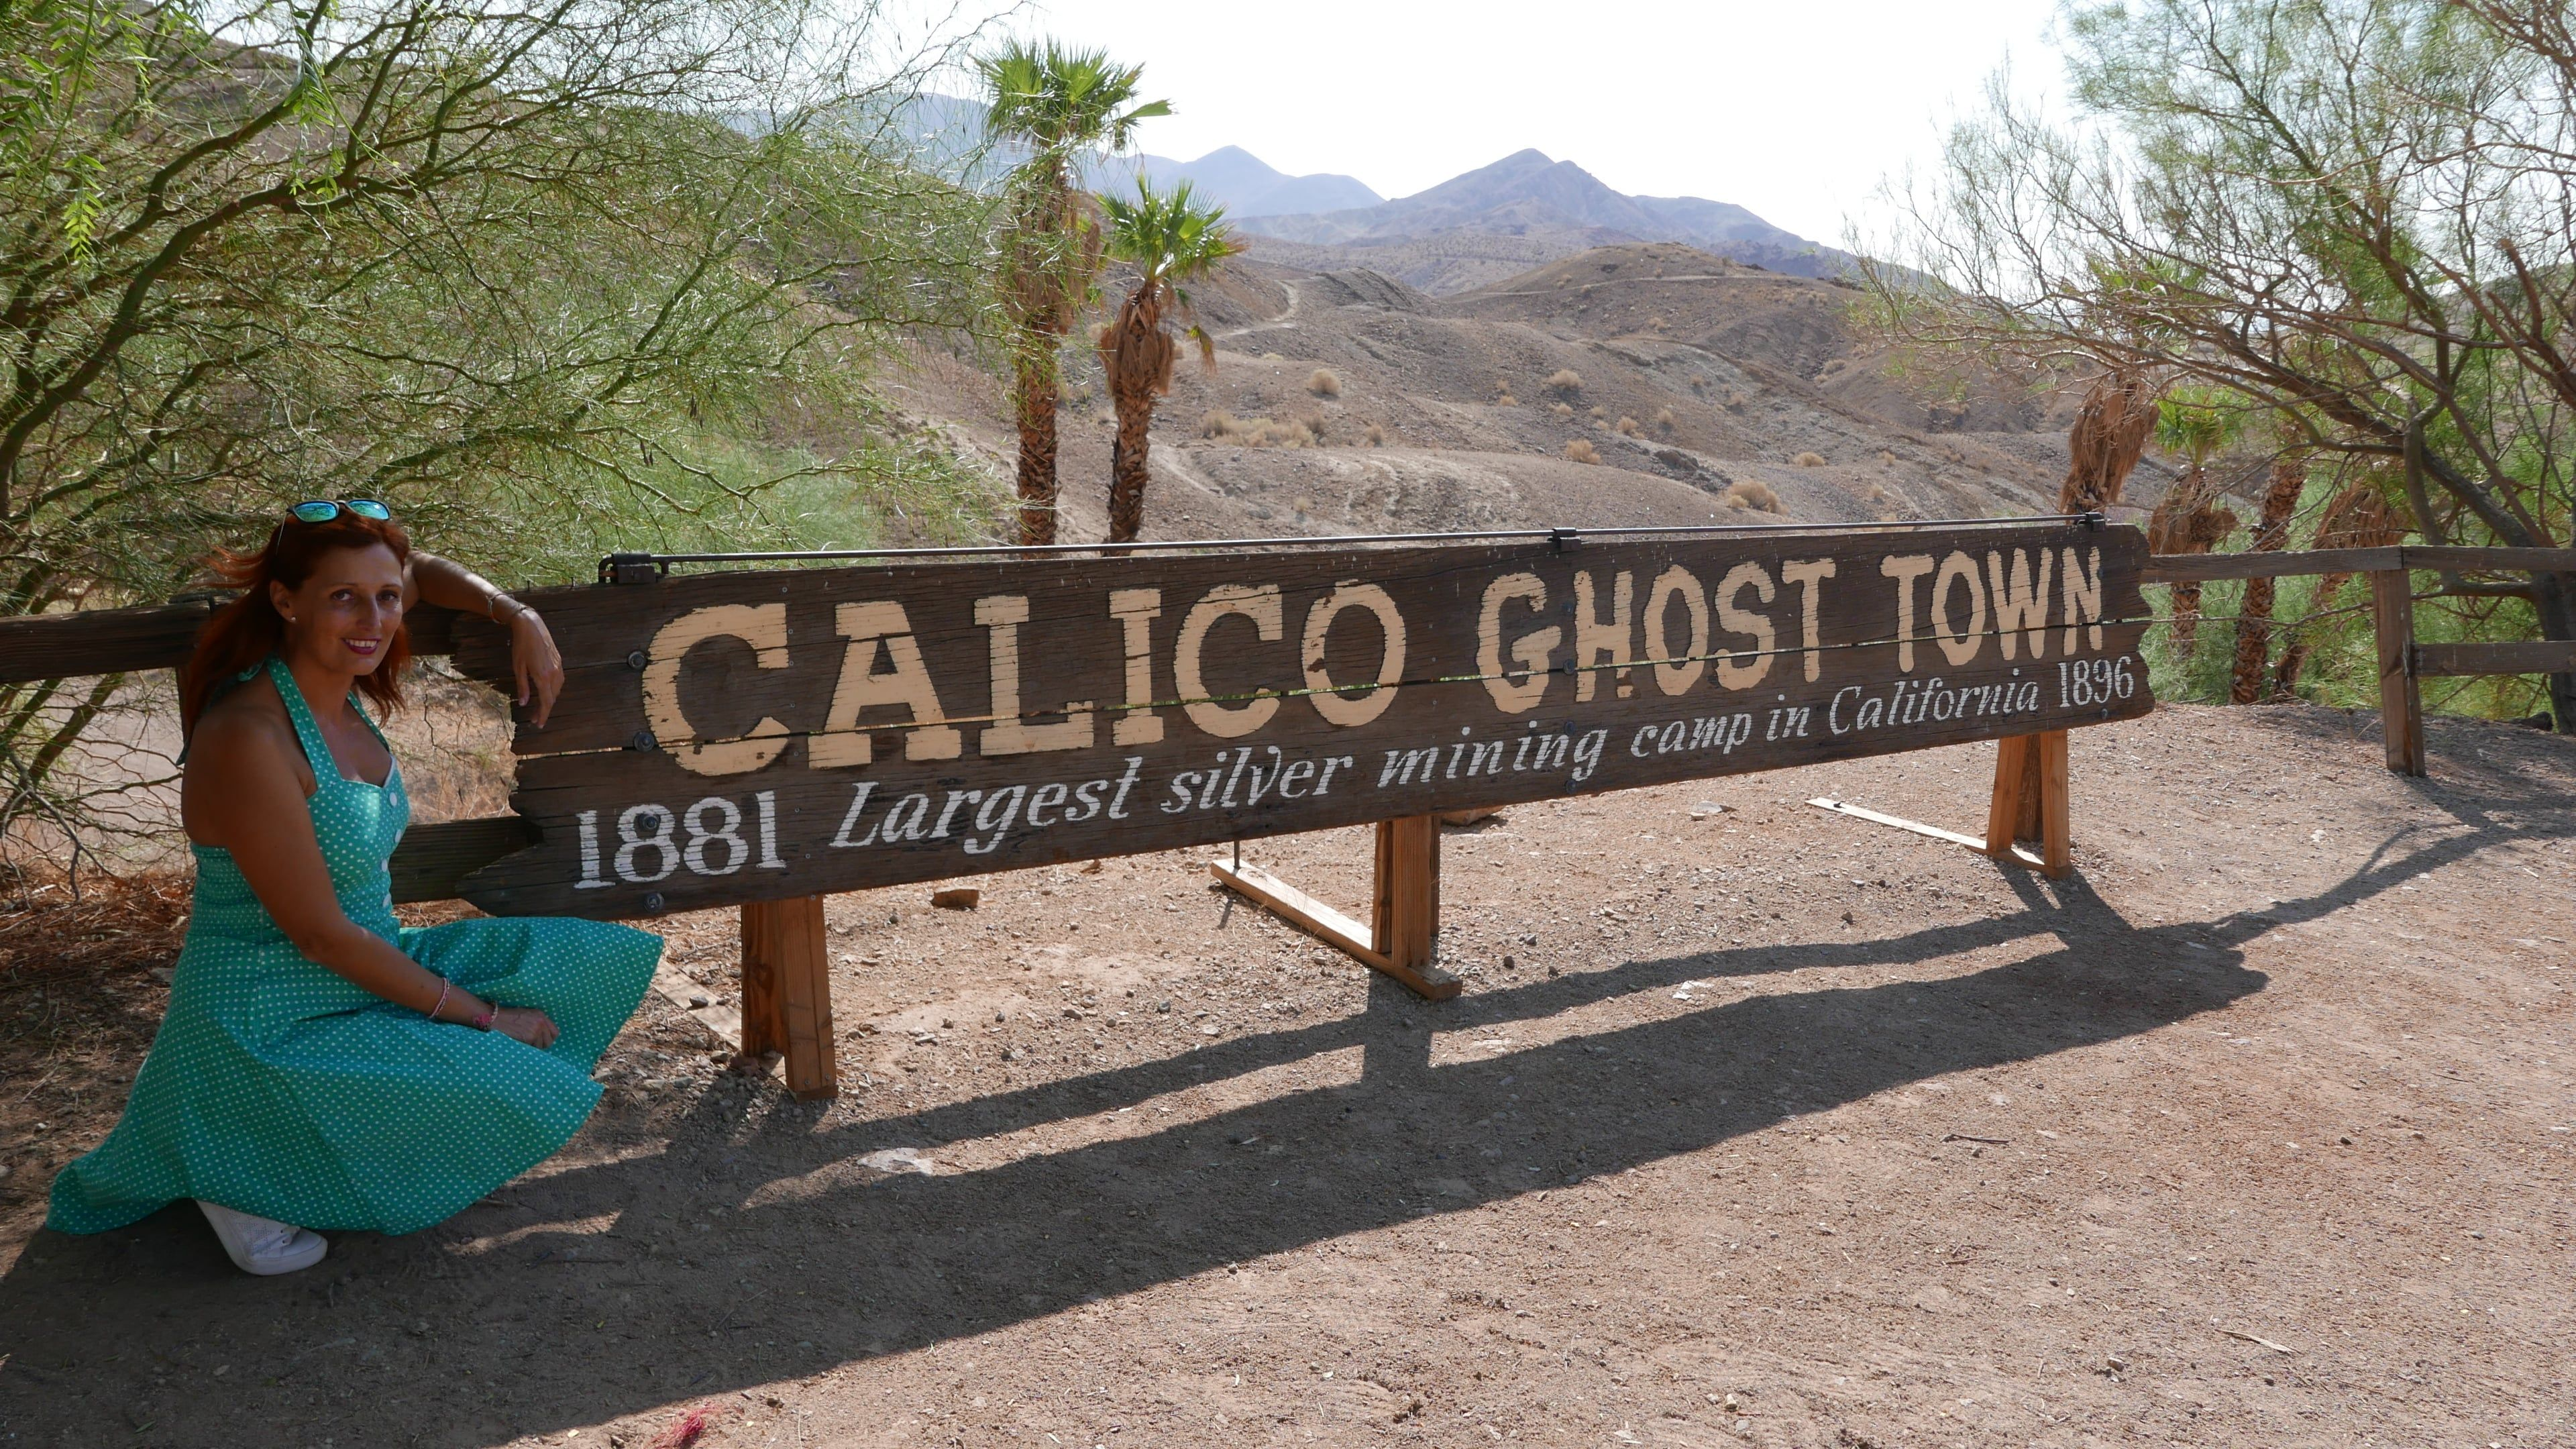 Calico Ghost Town ruta 66